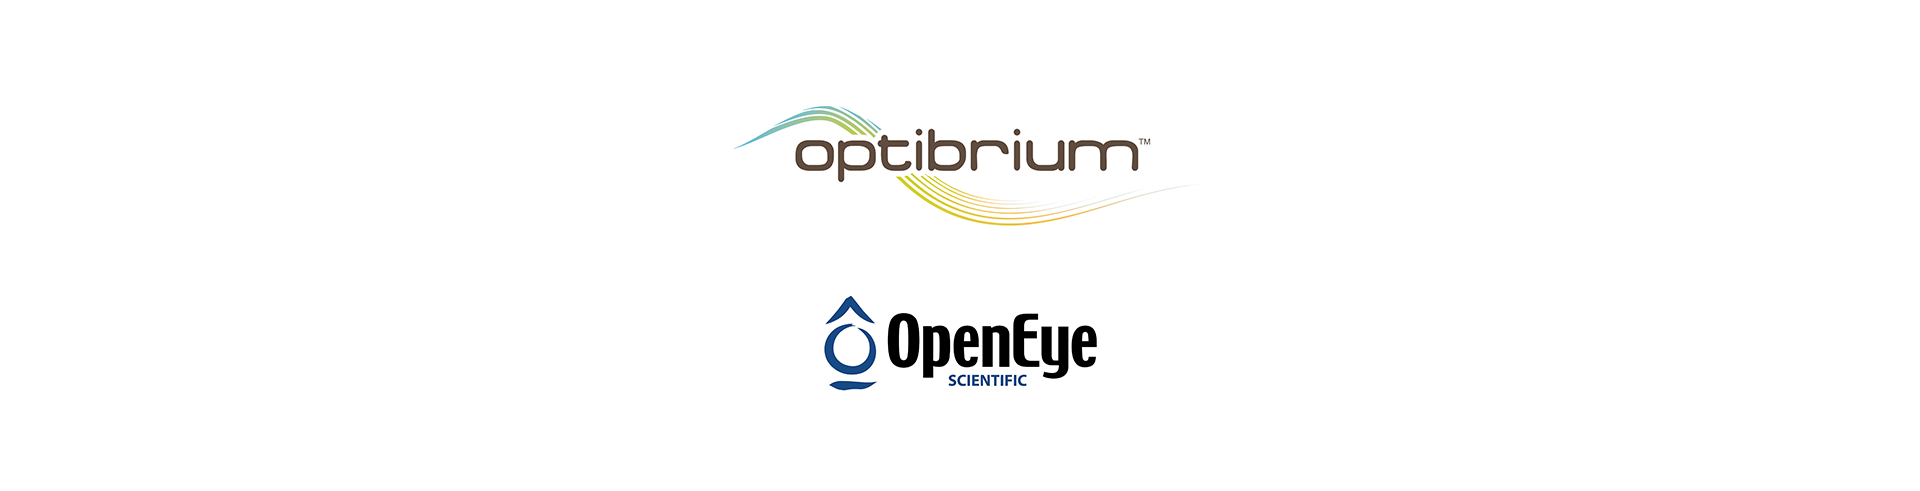 Optibrium Adopts Cheminformatics Toolkits From OpenEye Scientific